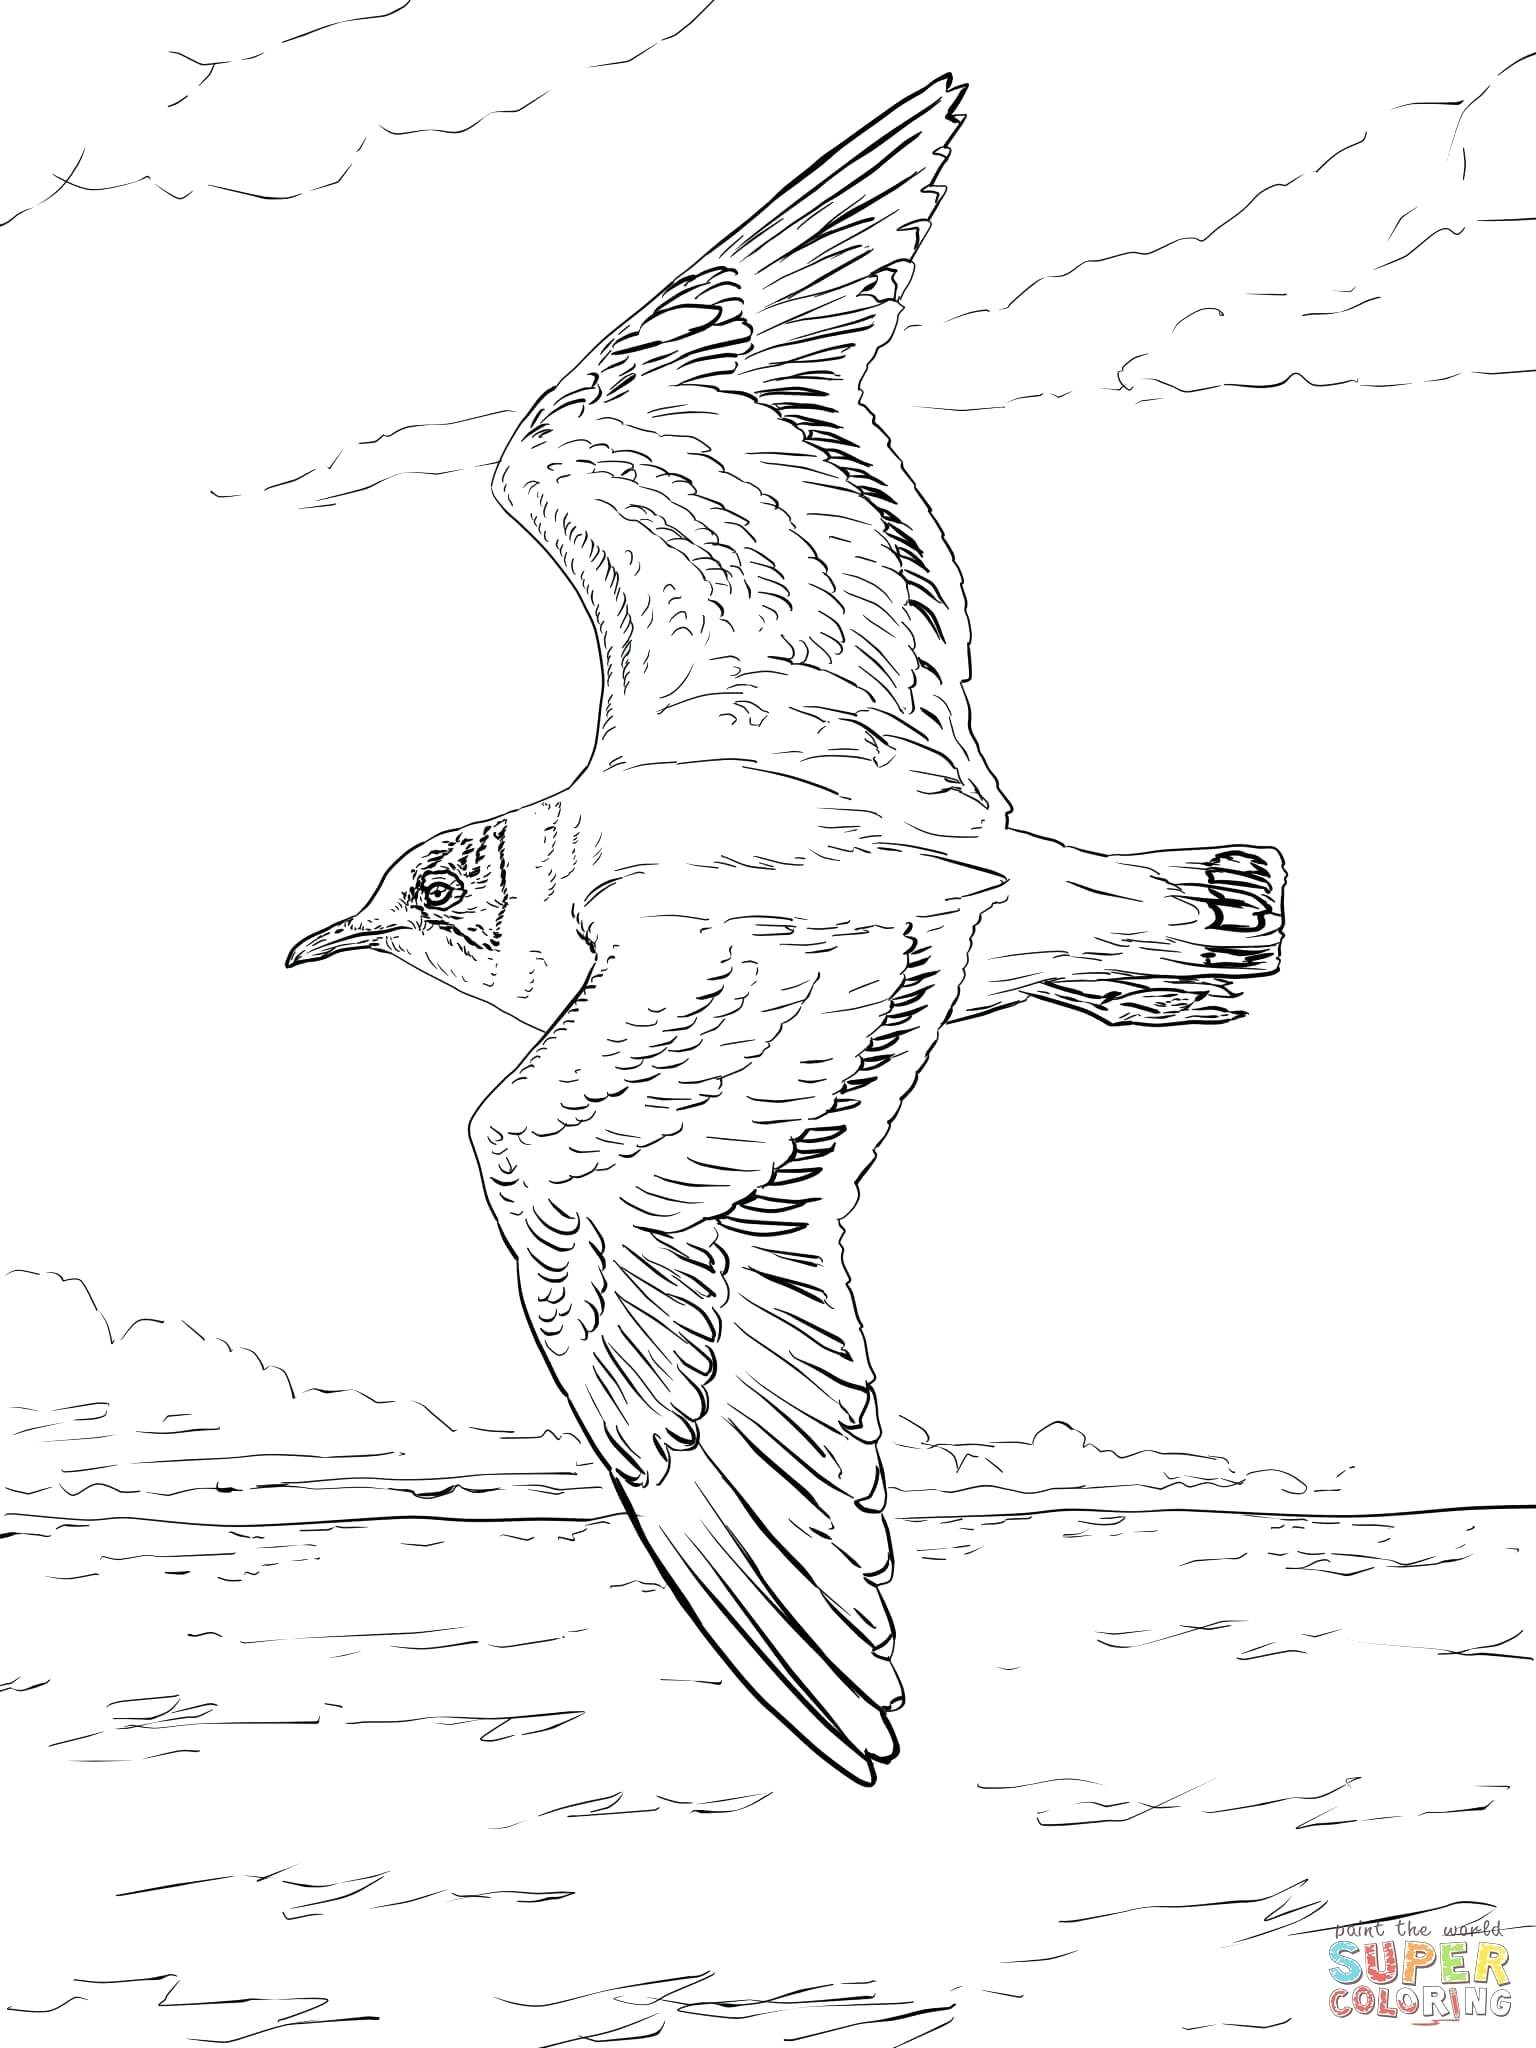 seagull in flight coloring pages - photo#13